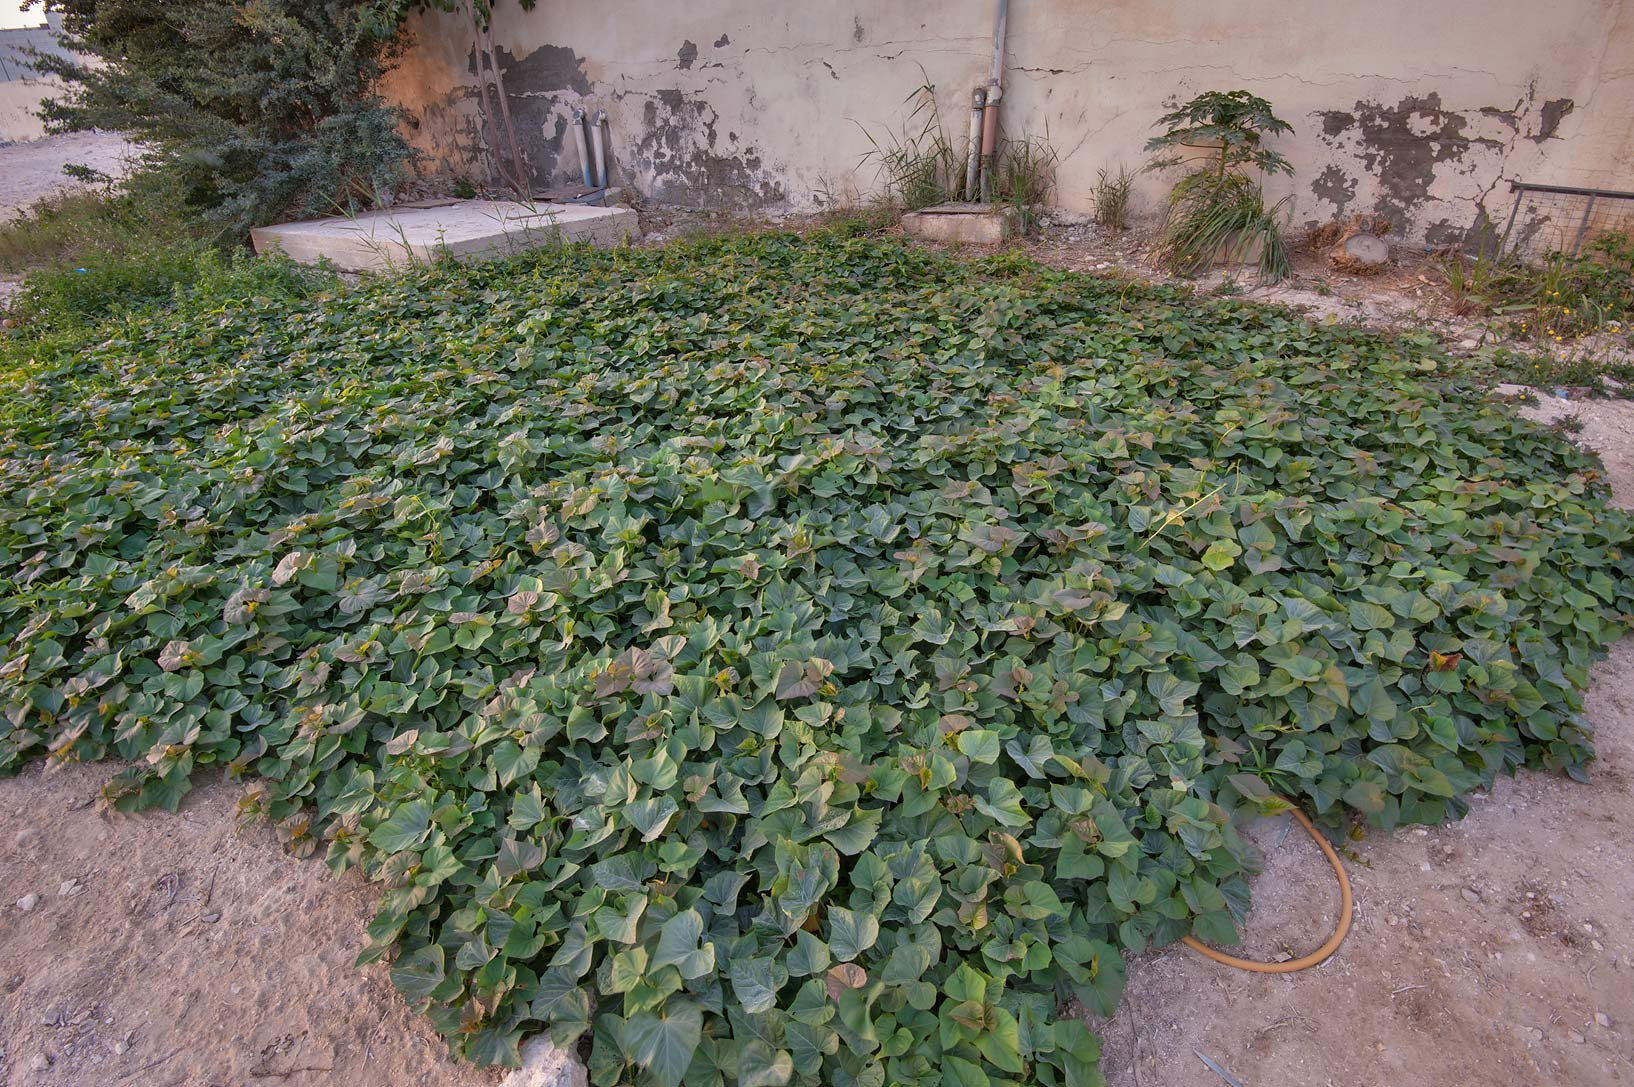 Field of cultivated sweet potato (Ipomoea batatas...St. in Al Lejbailat area. Doha, Qatar